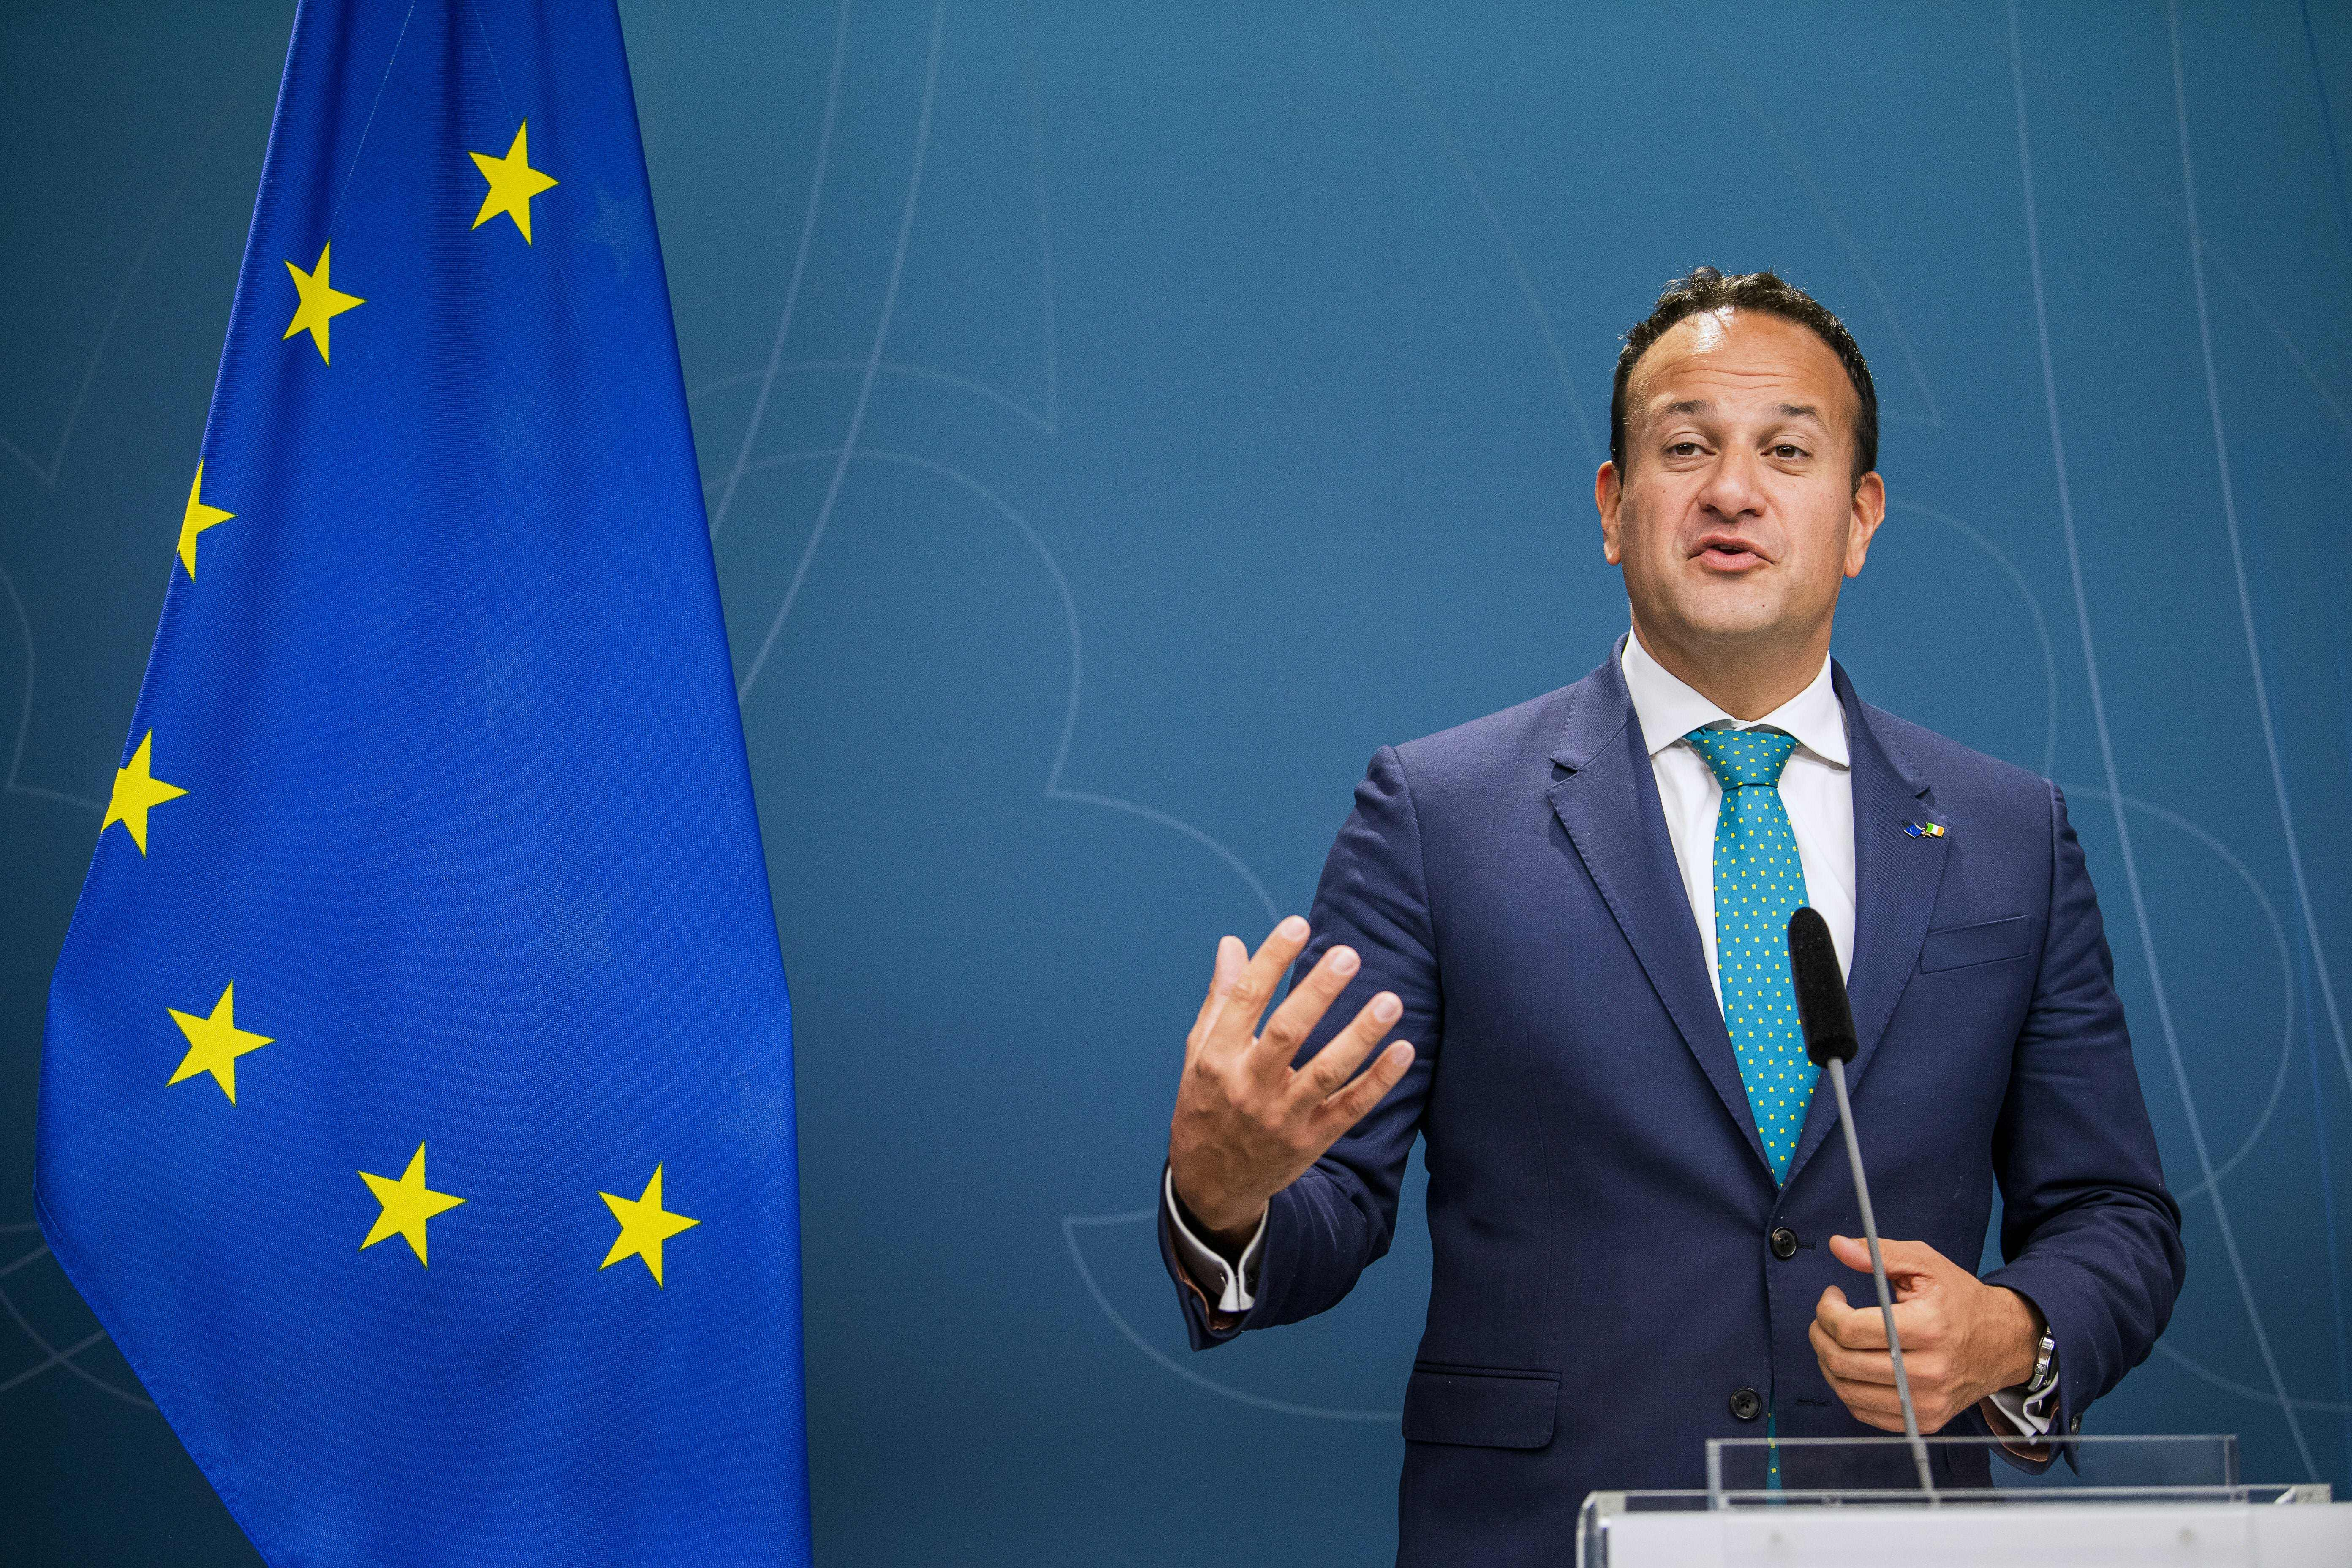 Leo Varadkar said there was a contradiction between Johnson's words and what was in the submitted papers.